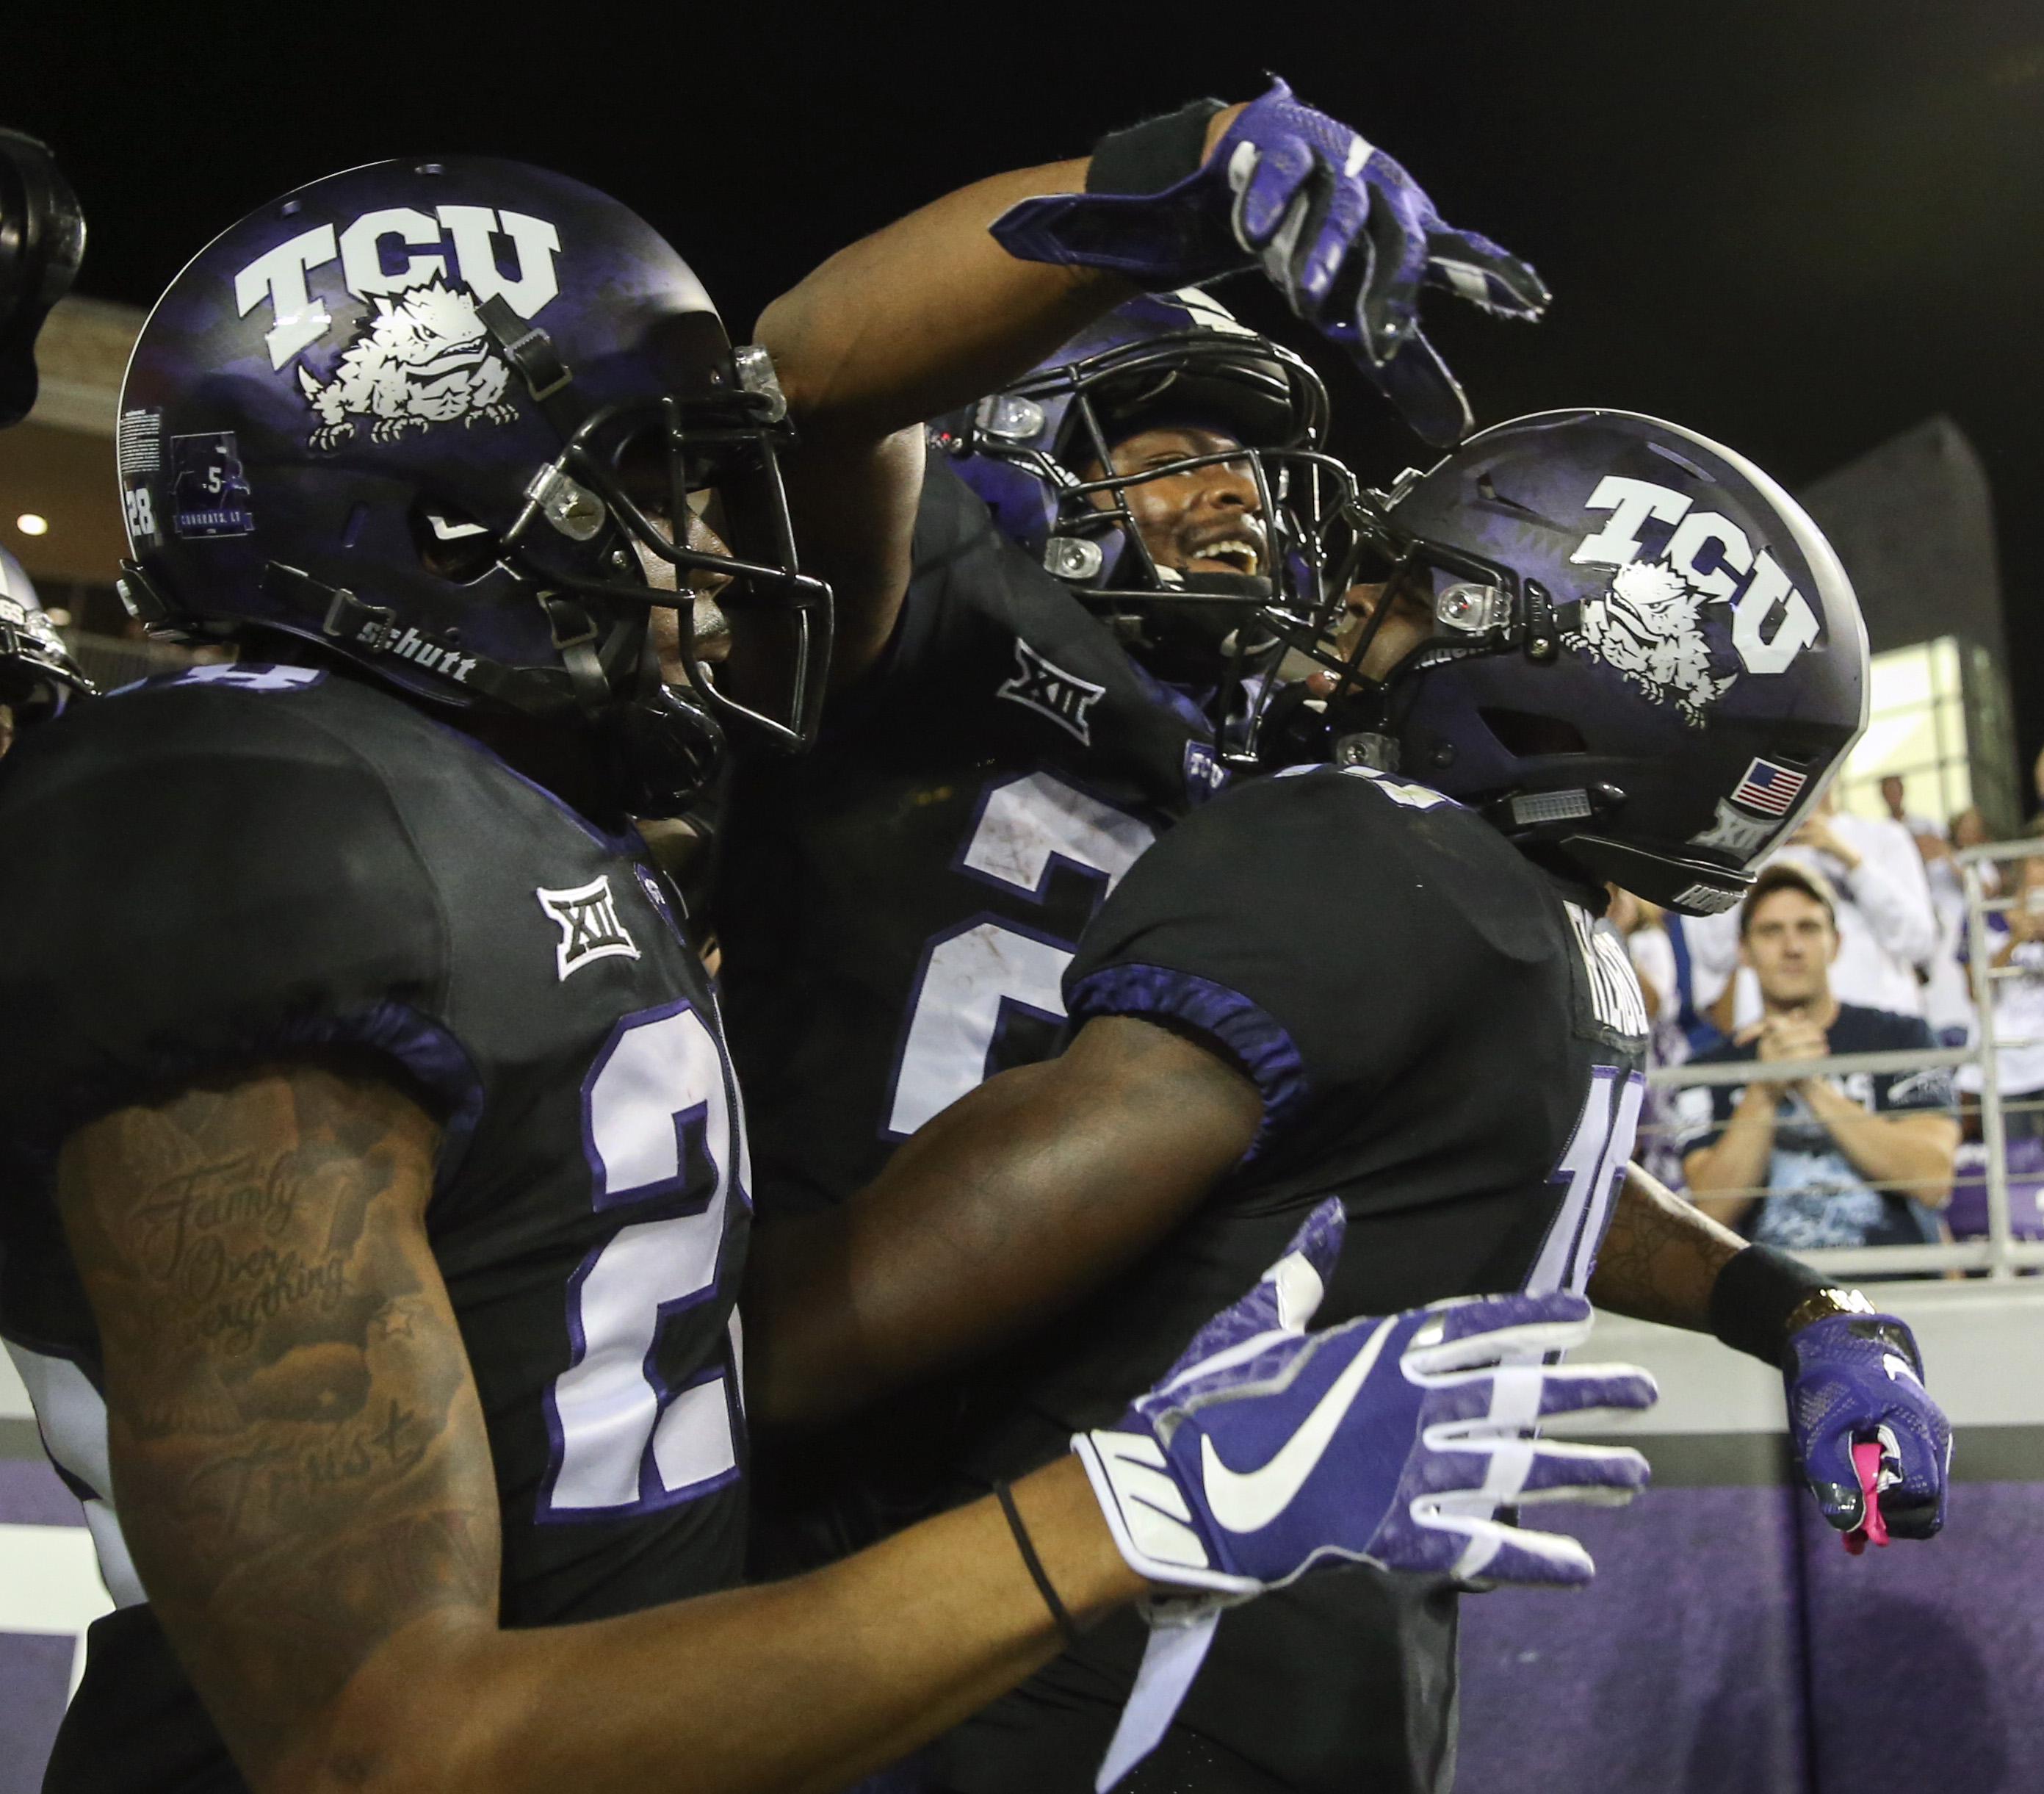 Oct 21, 2017; Fort Worth, TX, USA; TCU Horned Frogs wide receiver KaVontae Turpin (25) celebrates with teammates after scoring a touchdown during the second half at Amon G. Carter Stadium. Mandatory Credit: Kevin Jairaj-USA TODAY Sports